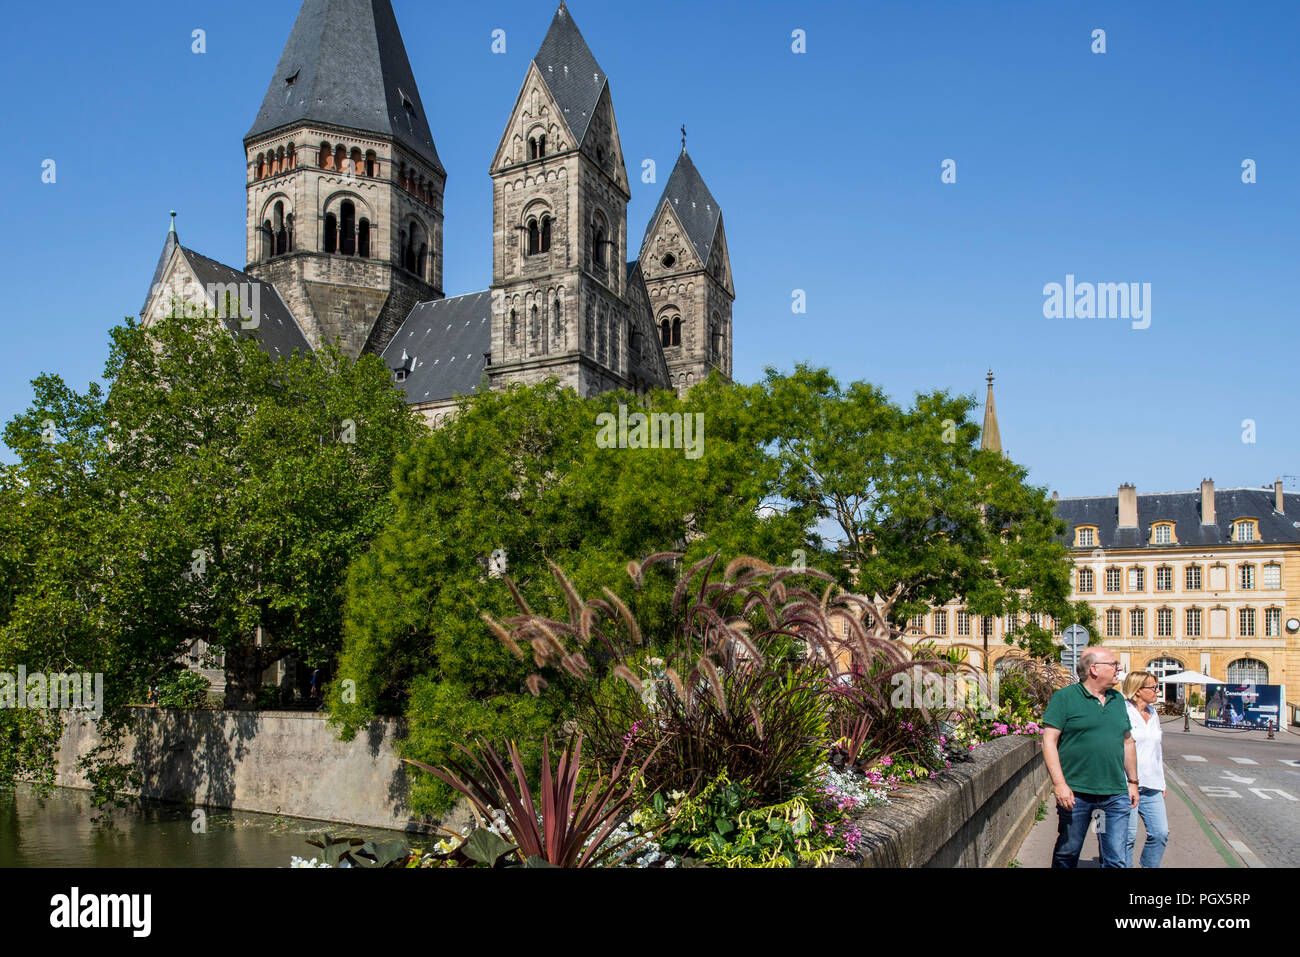 Temple neuf / Nouveau Temple Protestant church and tourists on the Pont des Roches over the Moselle river in the city Metz, Moselle, Lorraine, France Stock Photo